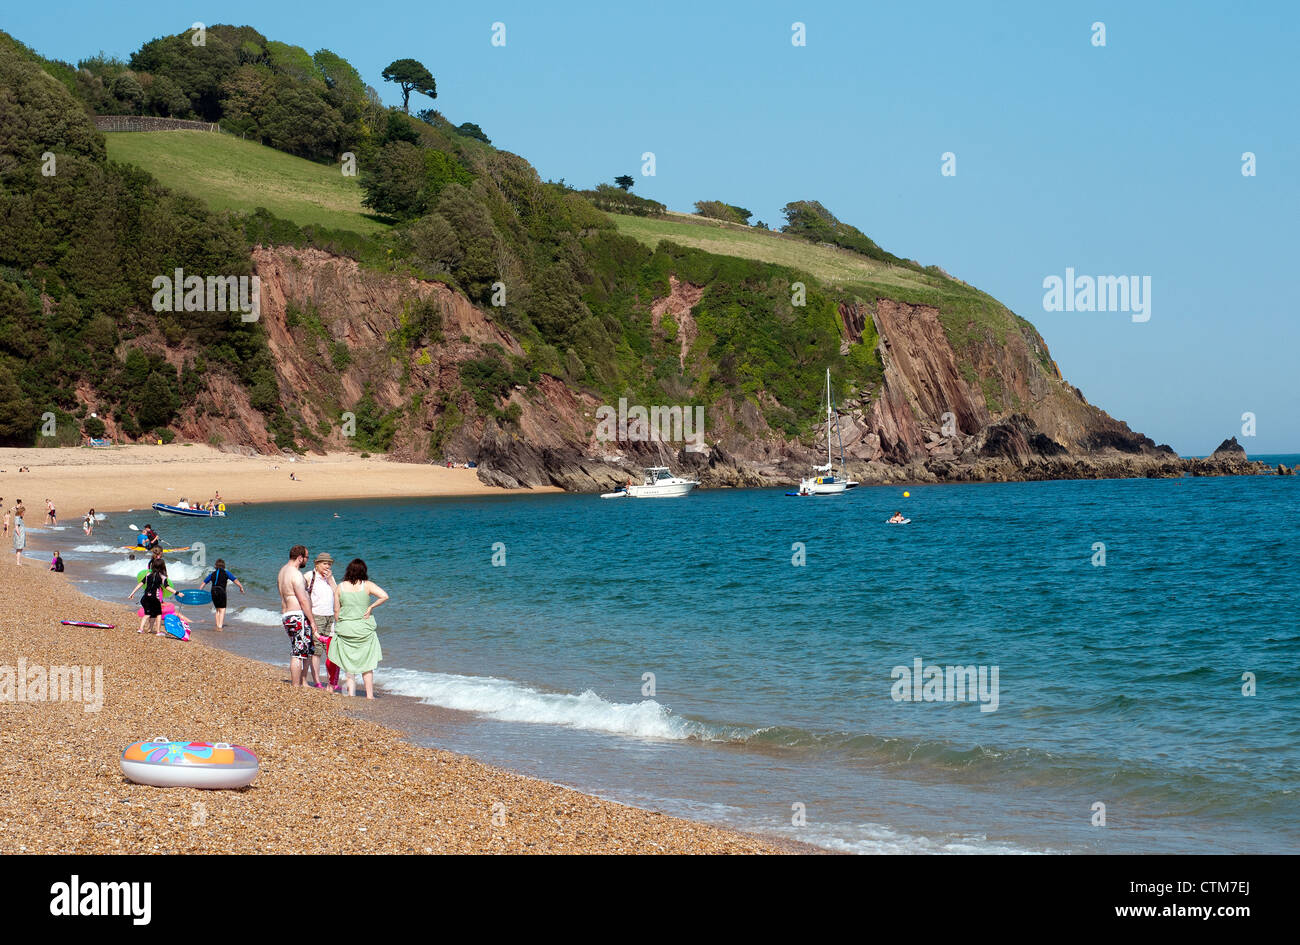 beach at Blackpool Sands, boats, cliff, coast, devon, england, house, ocean, rock, sand, sea, waves - Stock Image